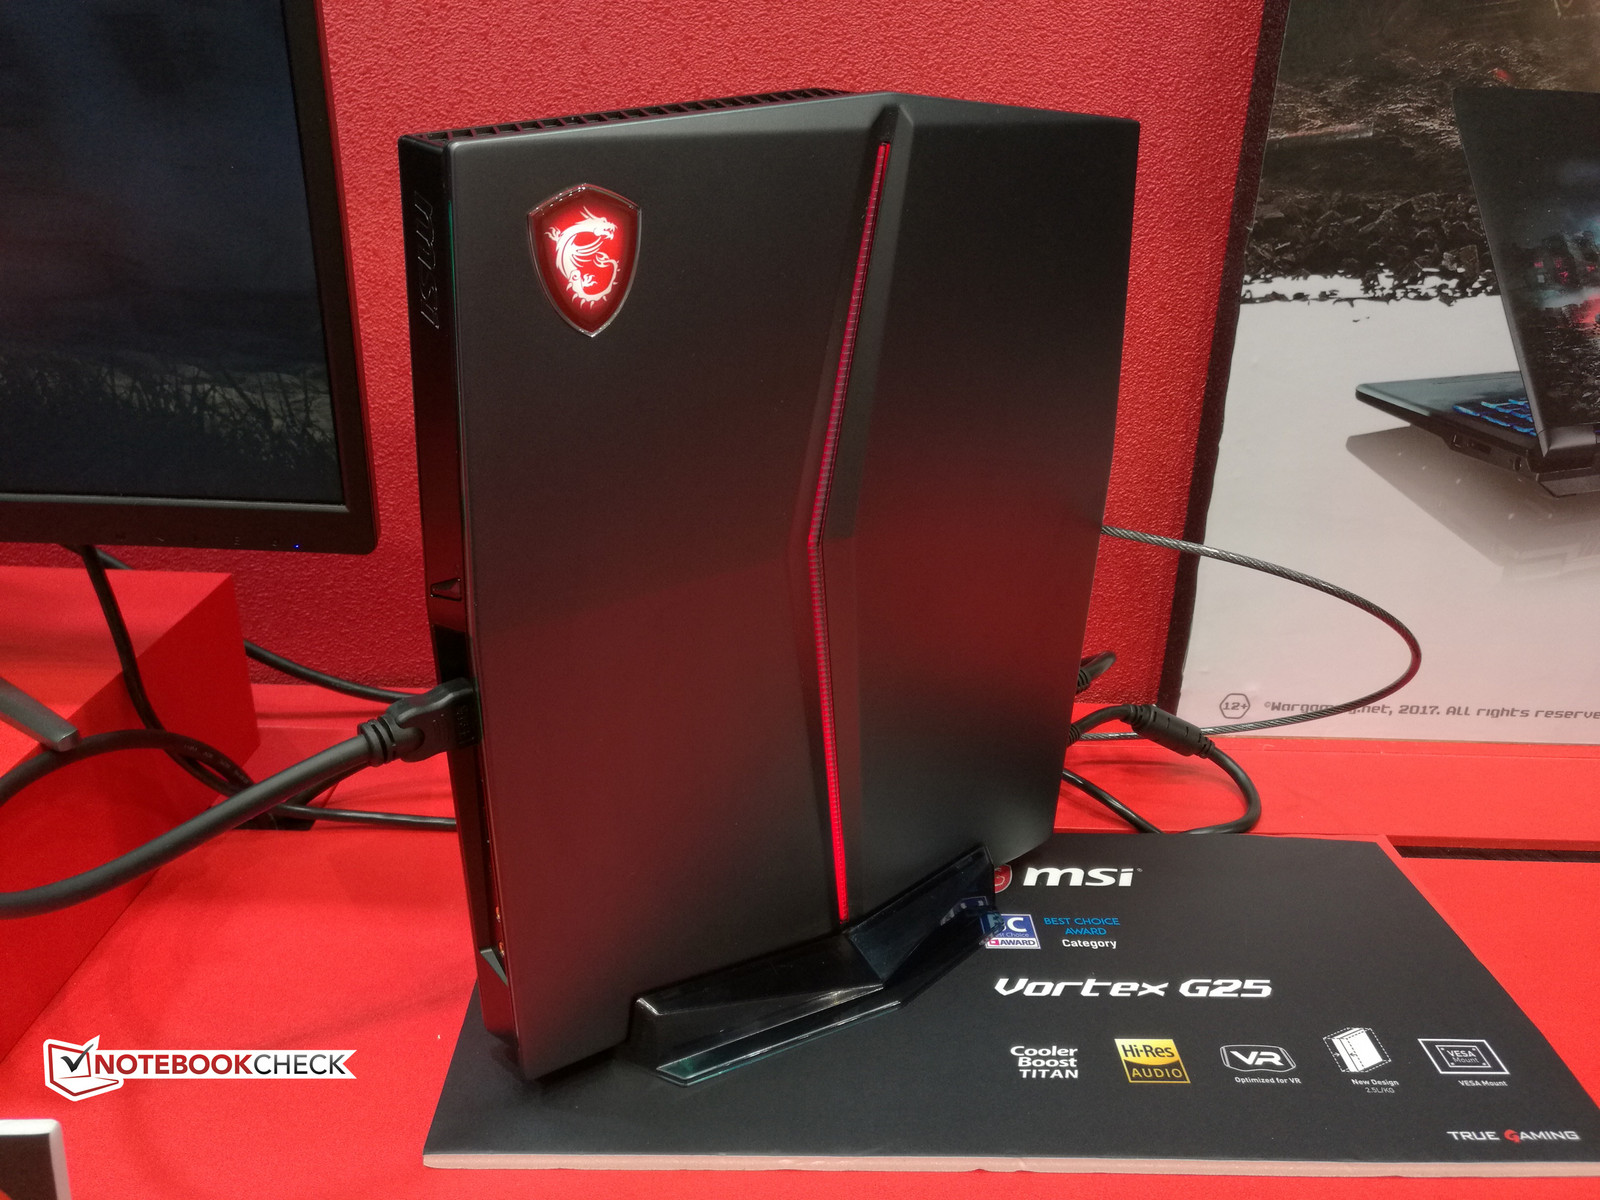 msi vortex g25vr mini pc hinting at september launch window for 8th generation intel core i7. Black Bedroom Furniture Sets. Home Design Ideas